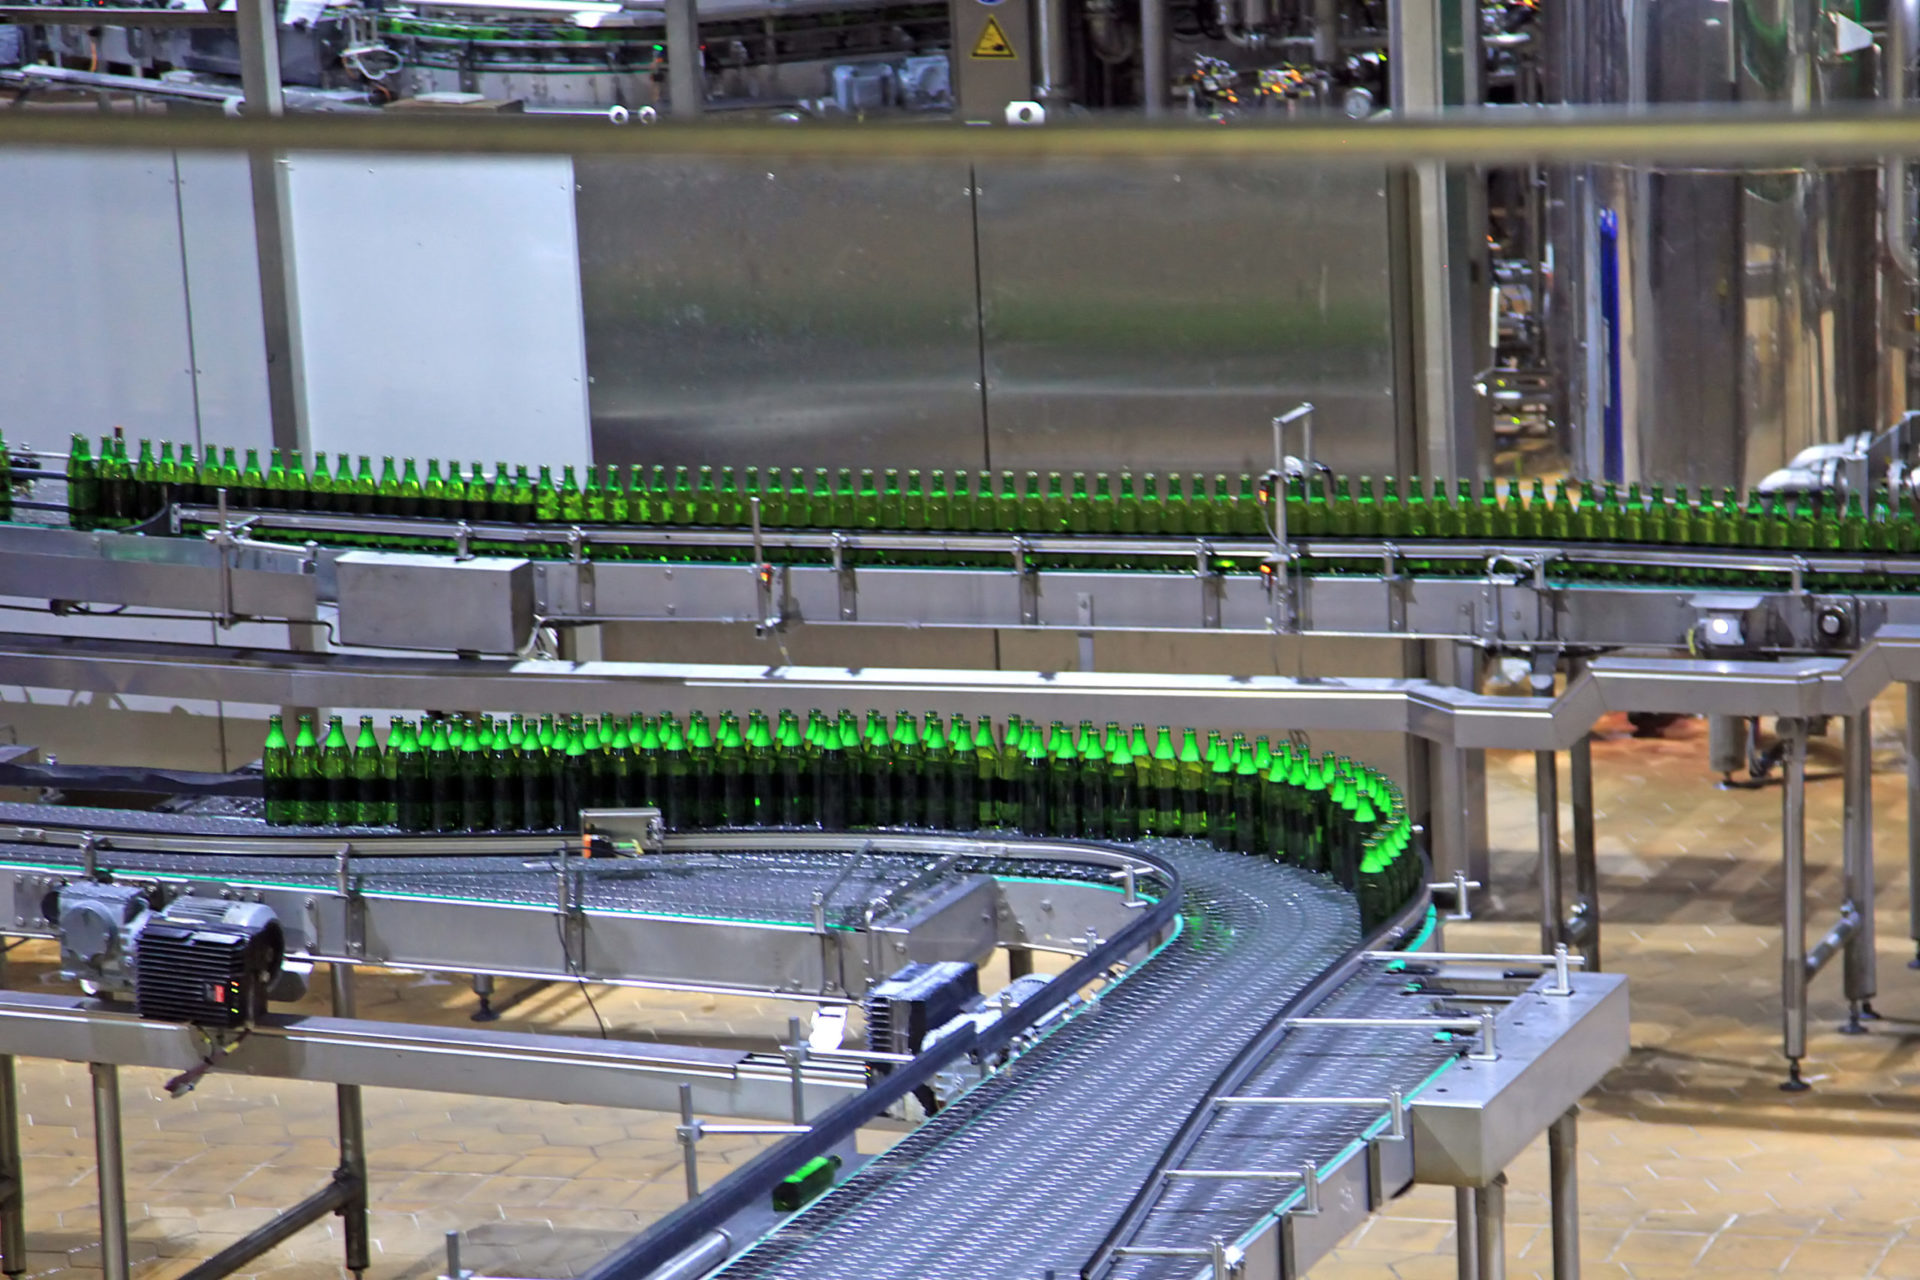 a conveyor belt with green beer bottles that are filled with beer in a brewery